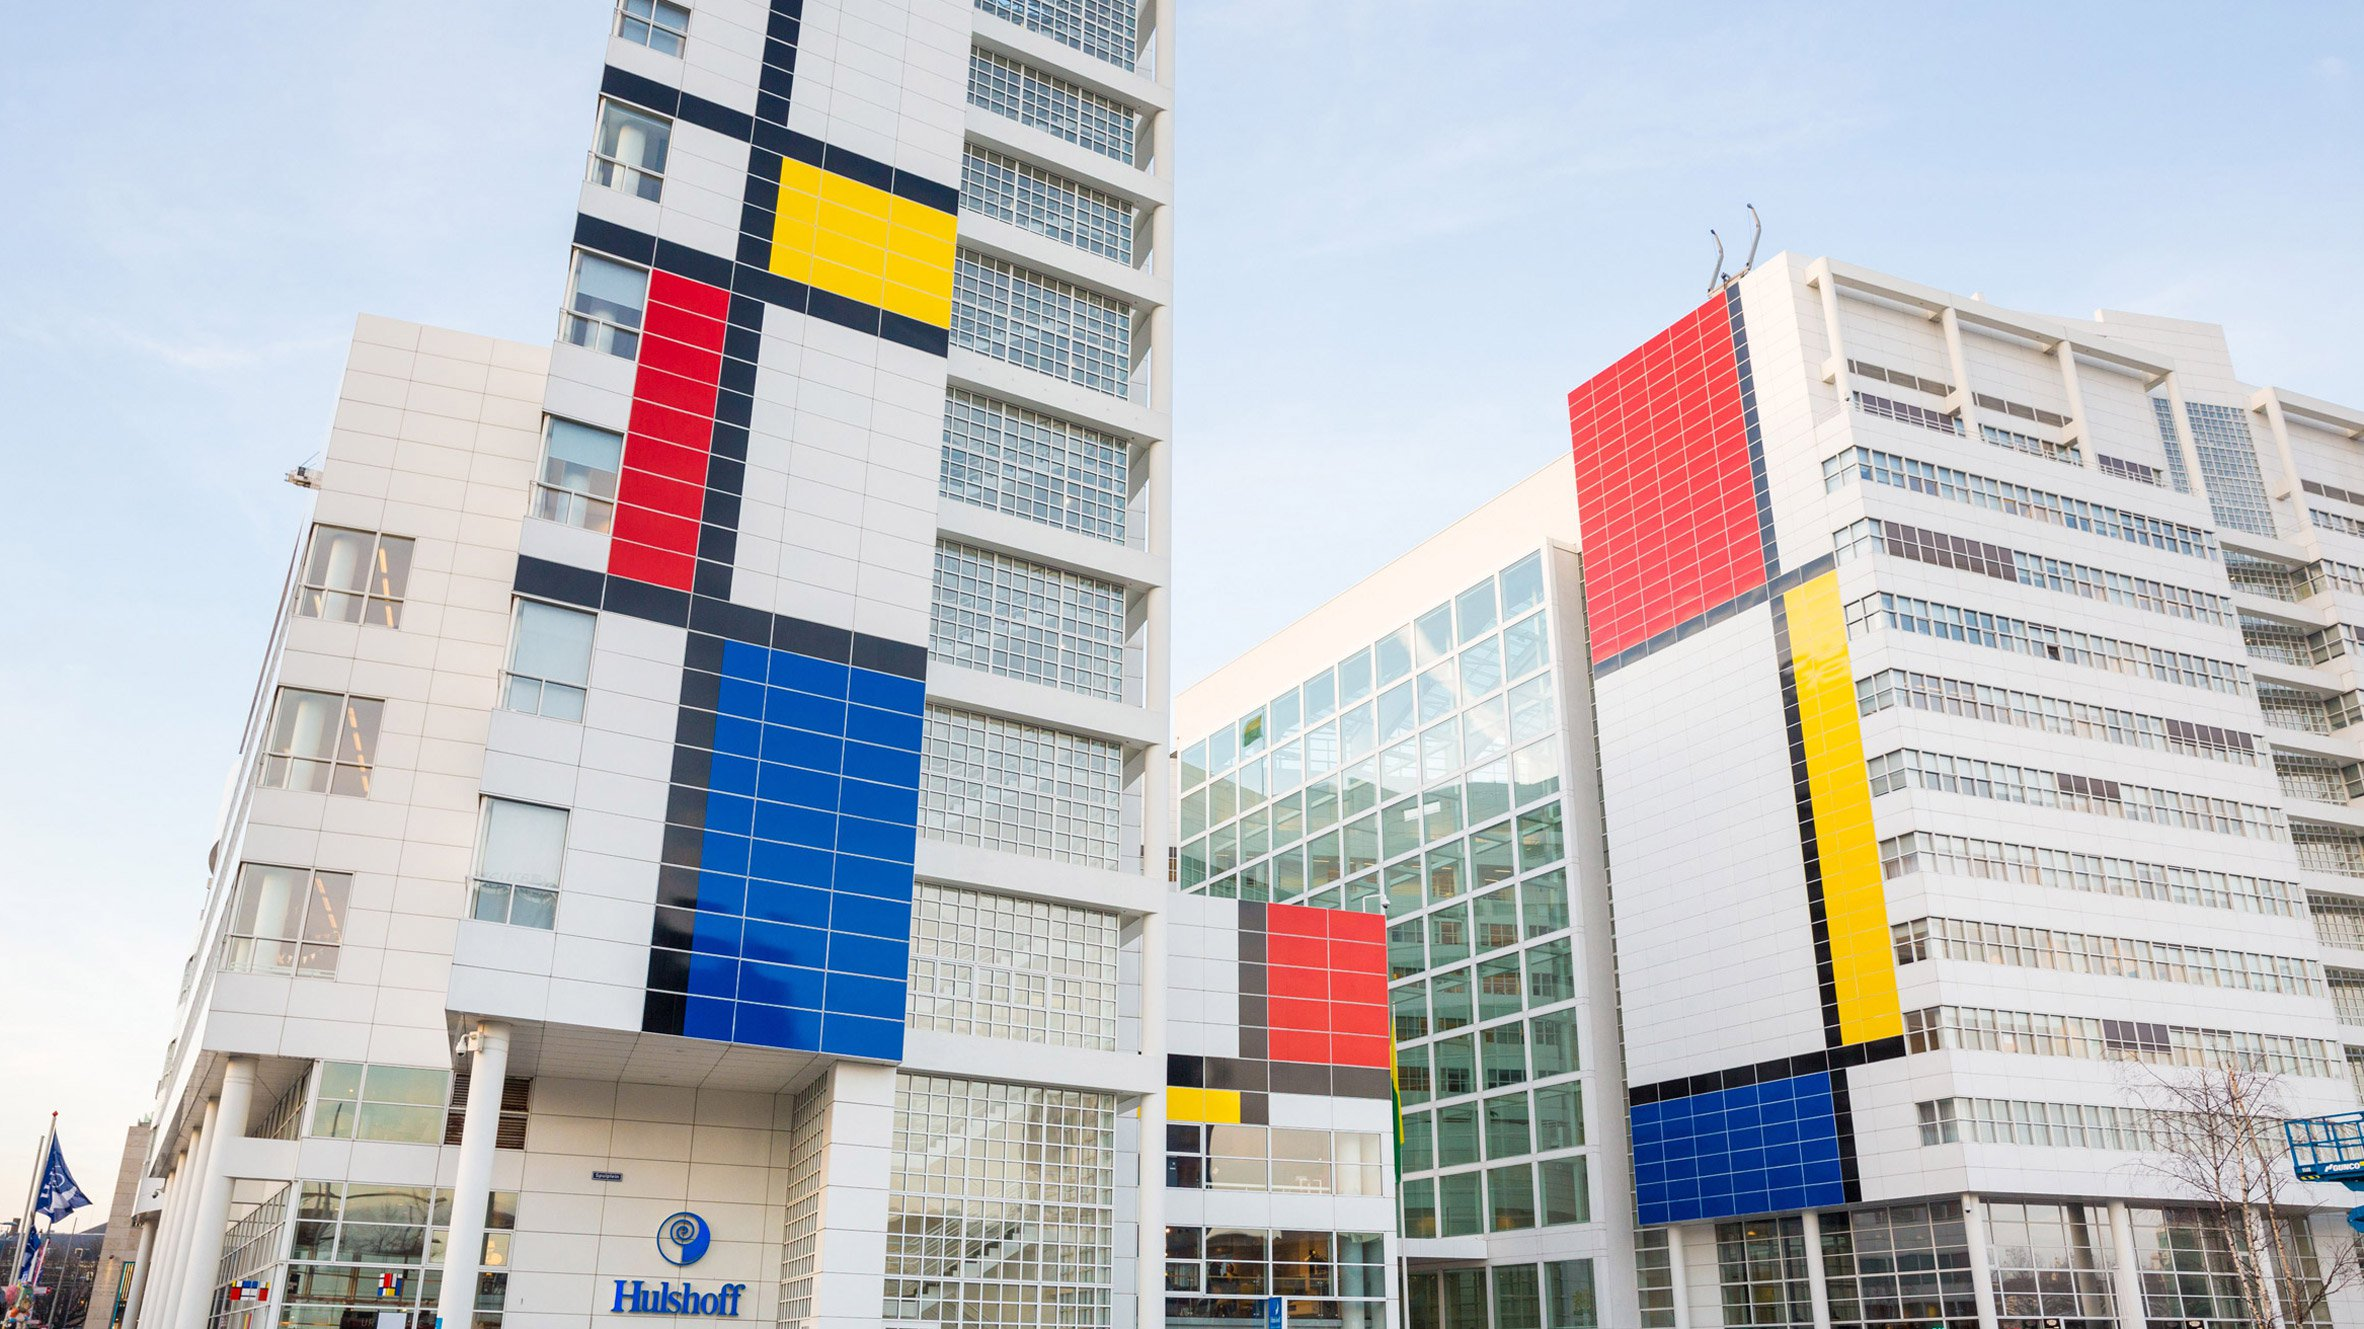 World's Largest Mondrian